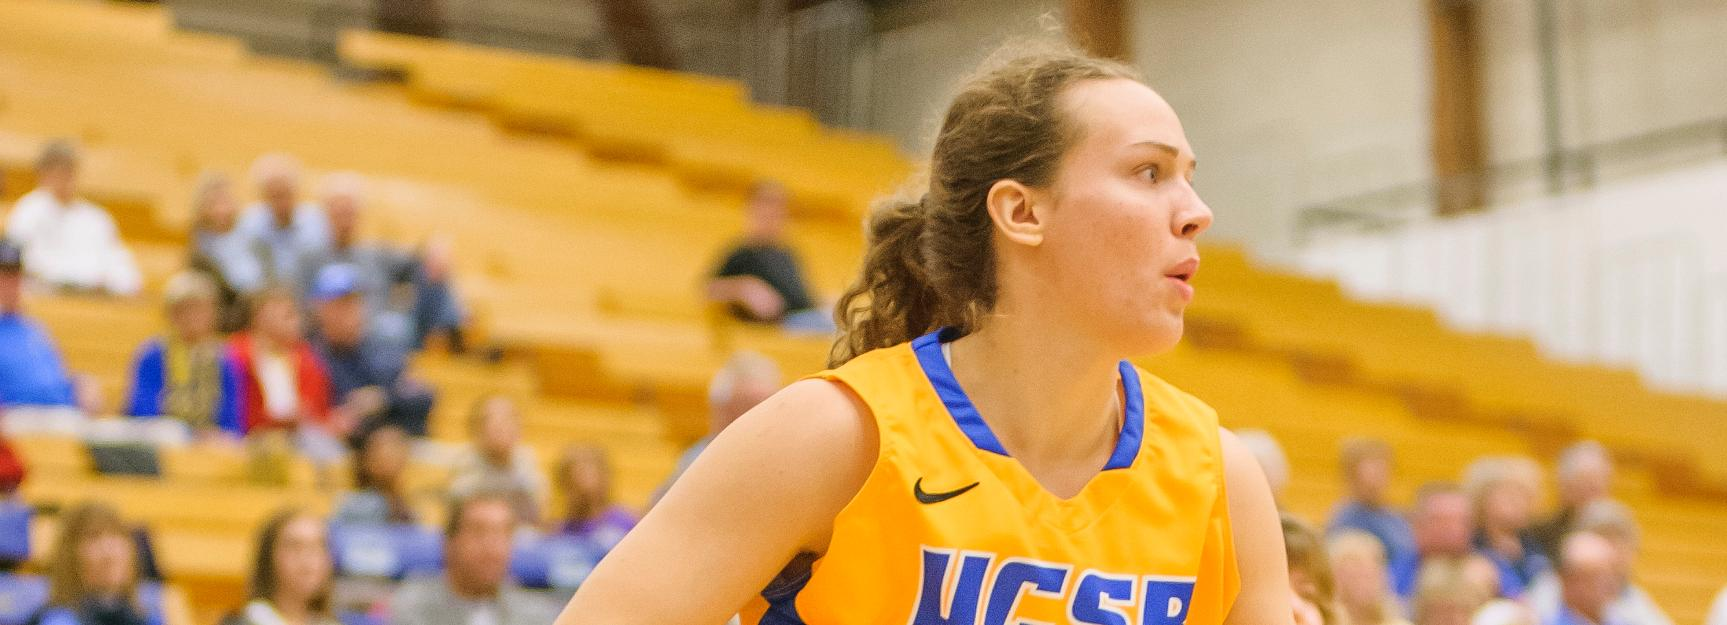 UCSB to Close First Round of Big West Schedule with Hawai'i